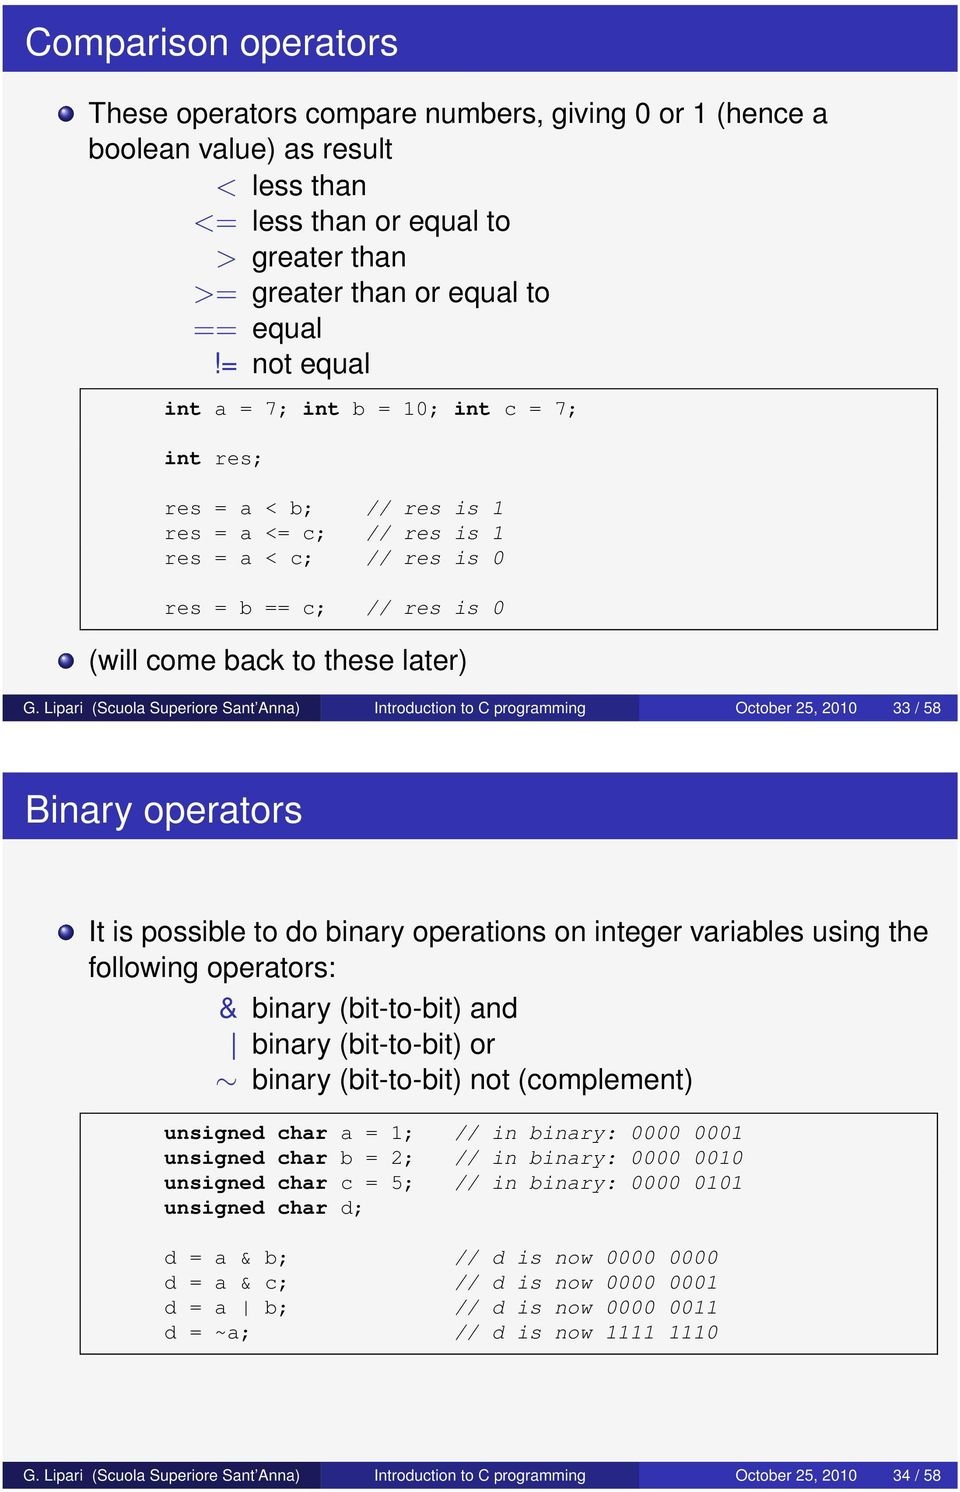 Lipari (Scuola Superiore Sant Anna) Introduction to C programming October 25, 2010 33 / 58 Binary operators It is possible to do binary operations on integer variables using the following operators: